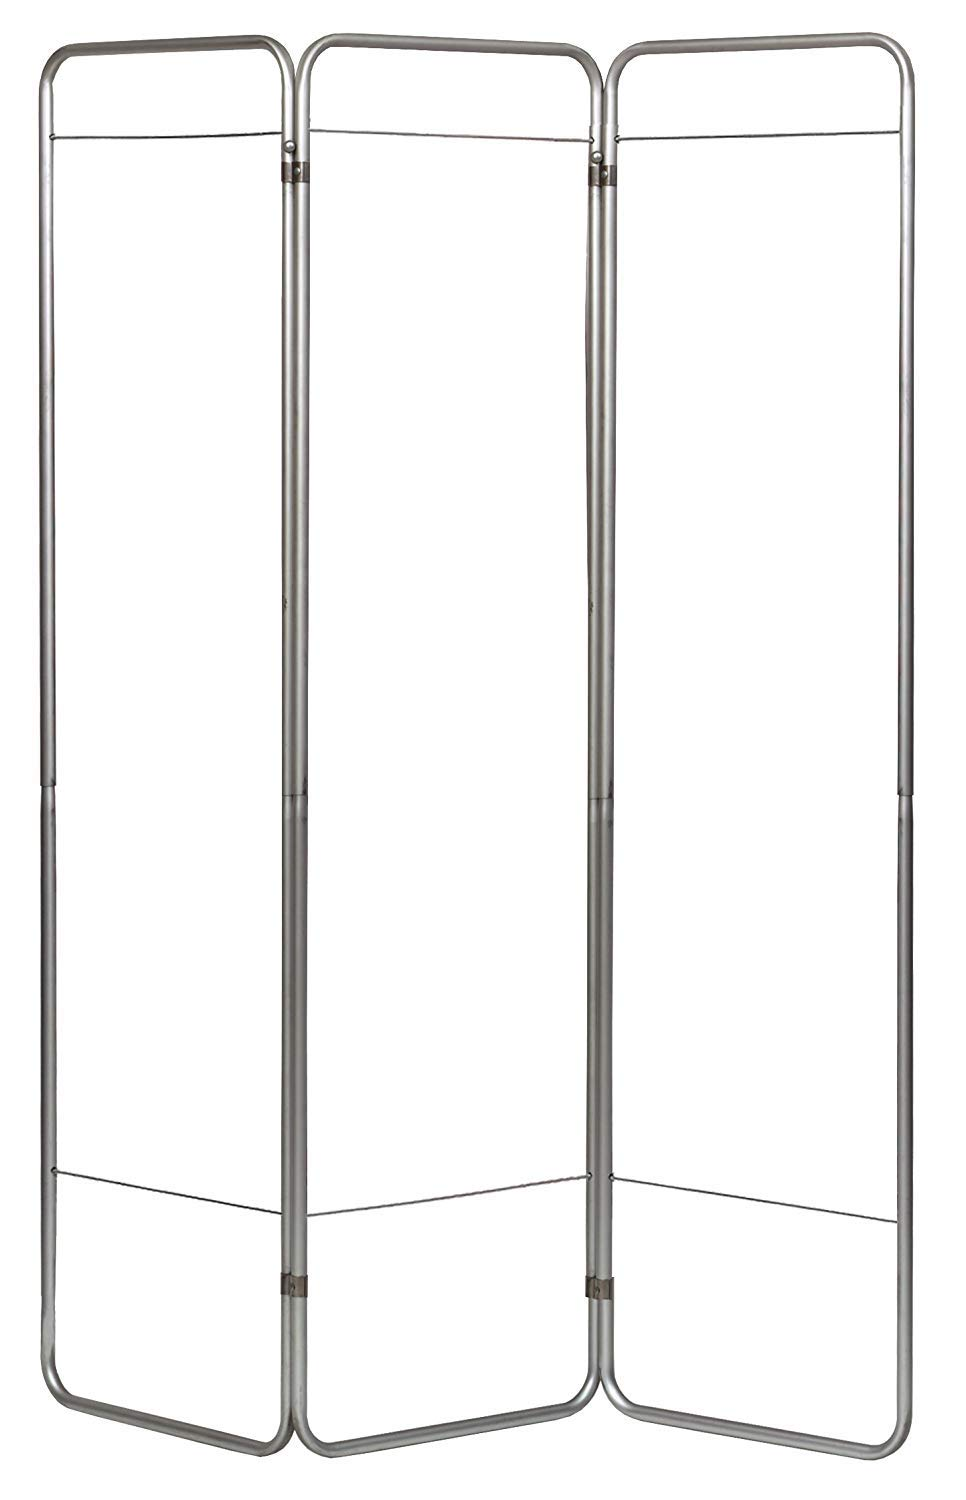 Omnimed 153093-ONLY 3 Panel Medical Privacy Screen-Frame ONLY